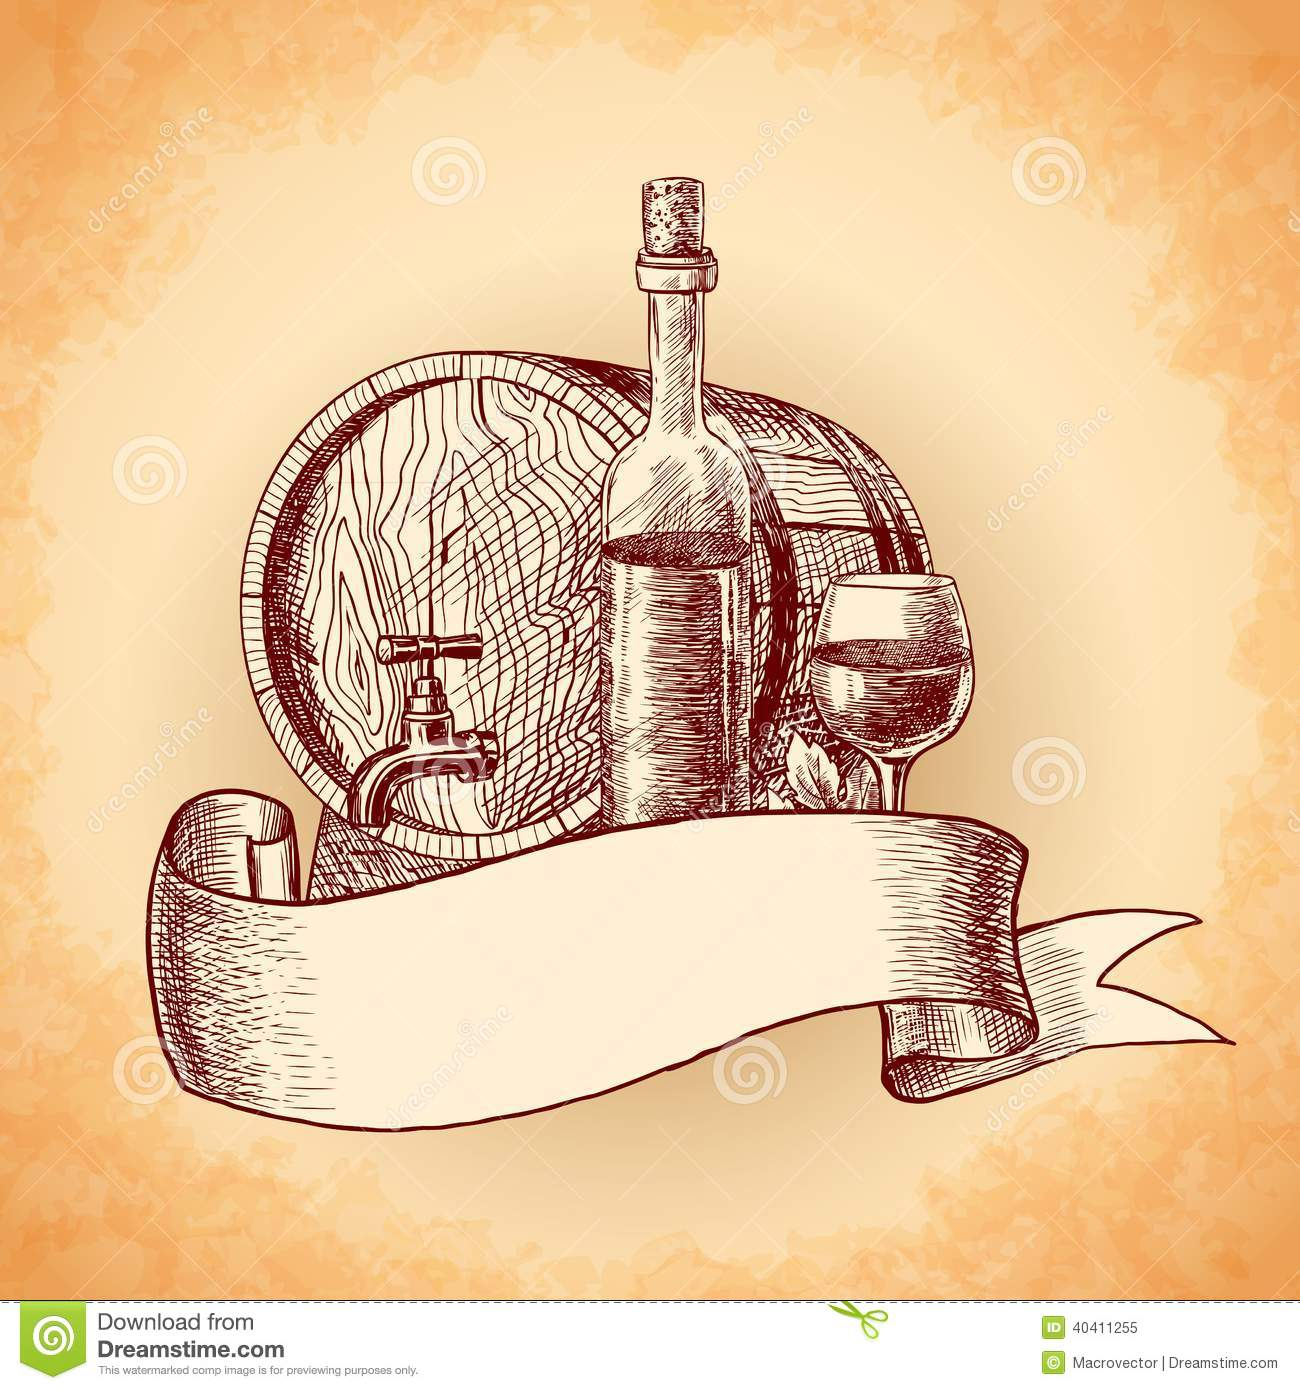 Wine Hand Drawn Background Stock Vector - Image: 40411255